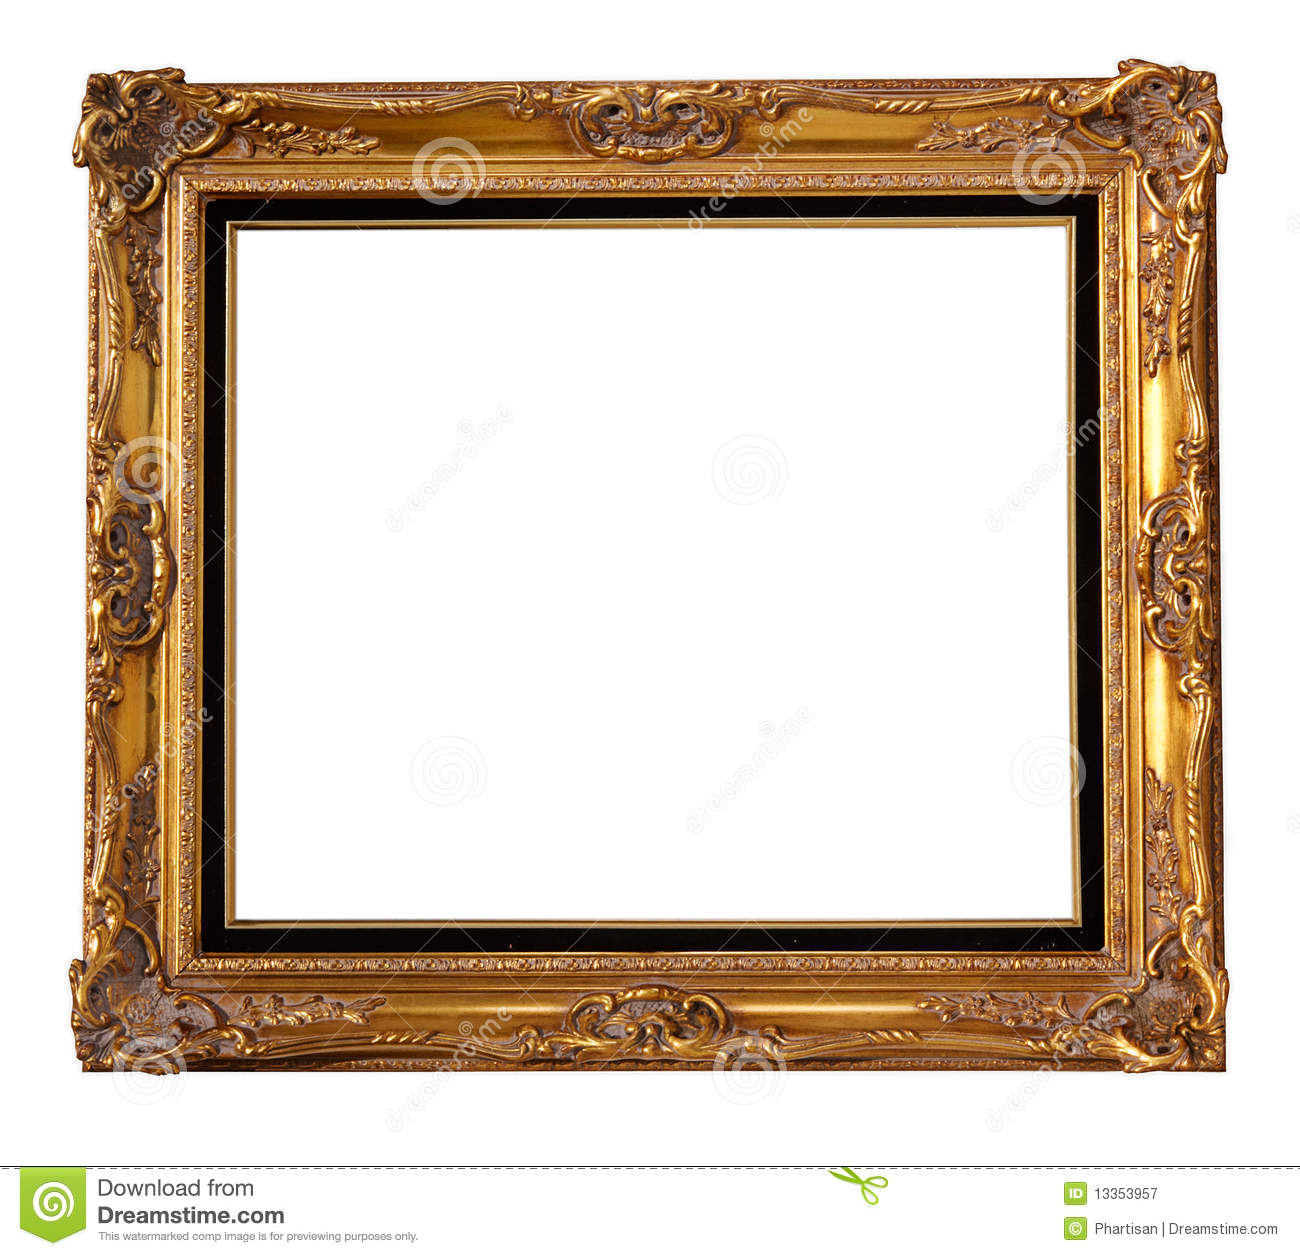 Photo of a large wooden gold ornate frame.